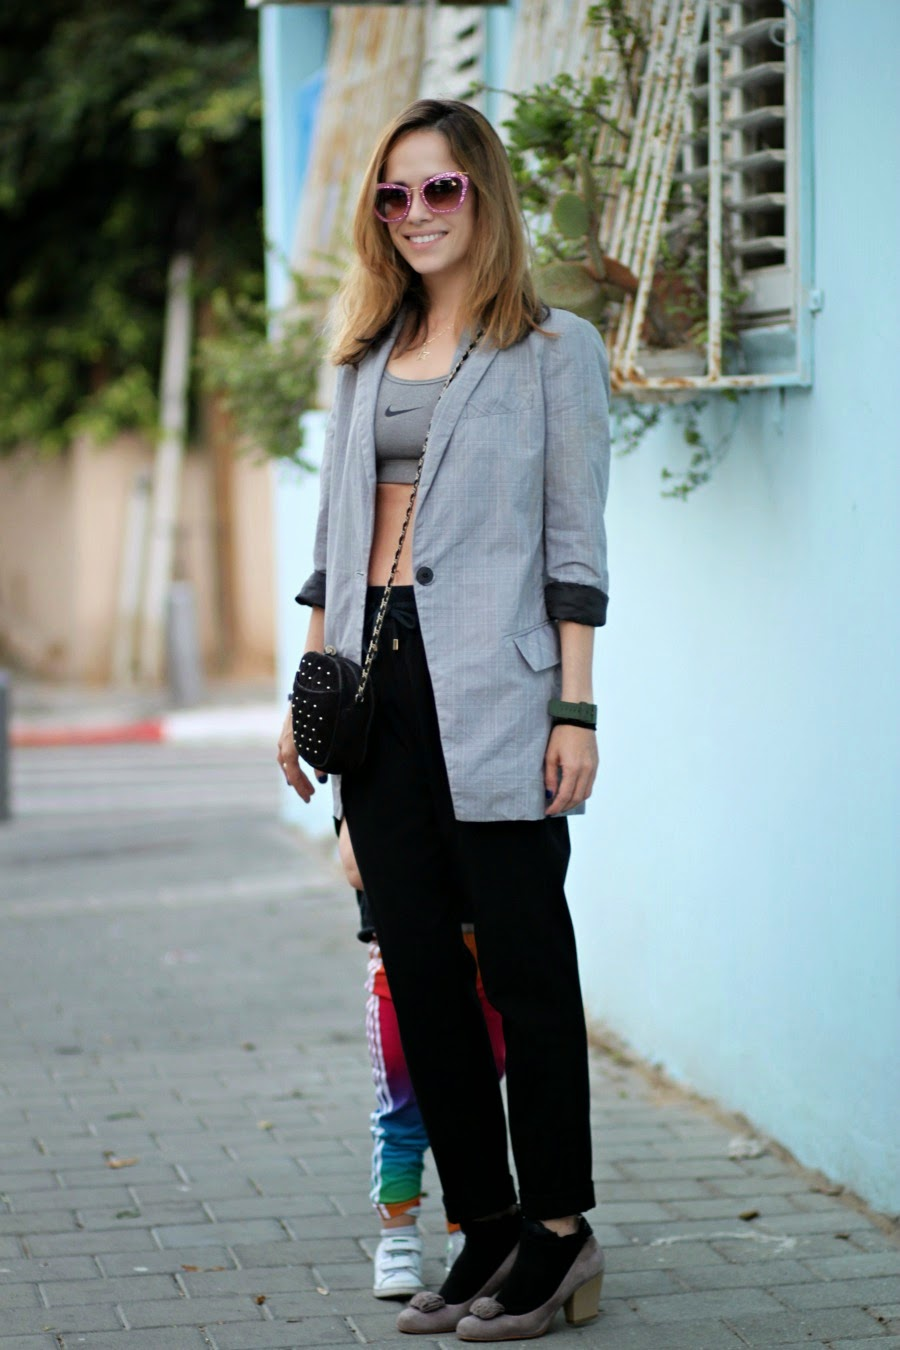 blazer, unbutton, tunmy, lookoftheday, blog, fashionblog, ootd, streetstyle, בלוגאופנה, טלינחשון, אופנה